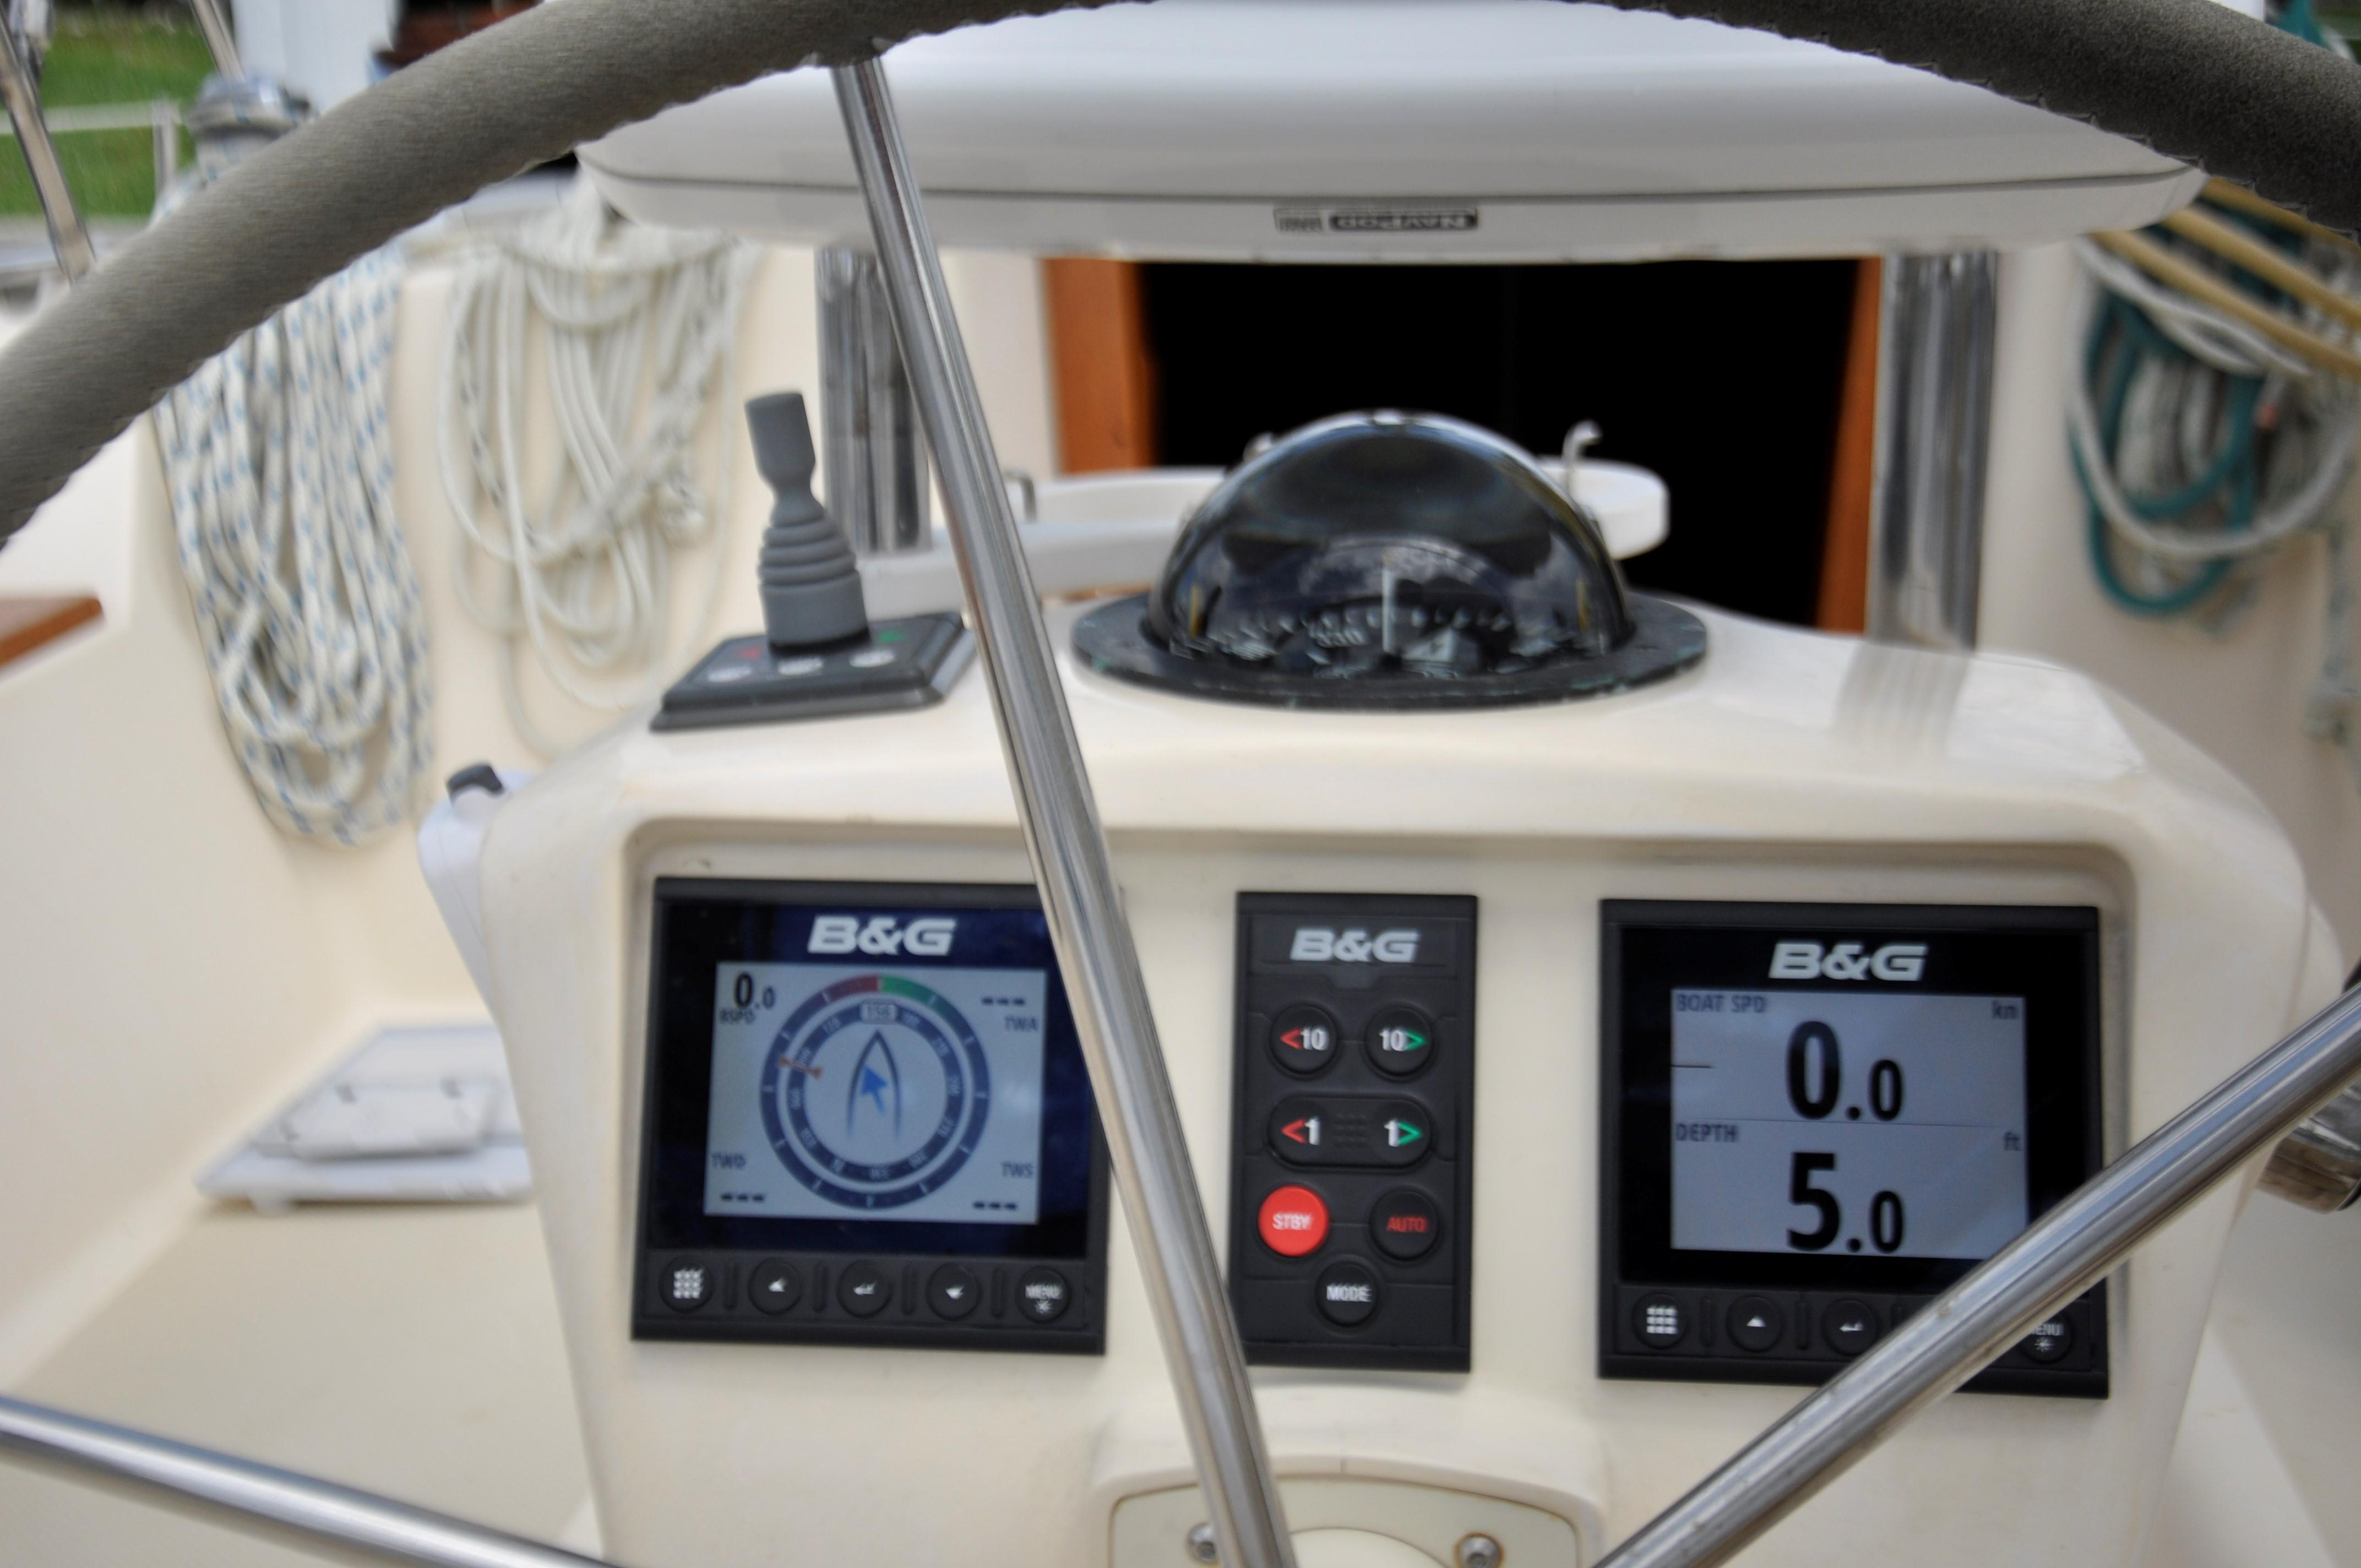 new B&G Triton displays and autopilot control